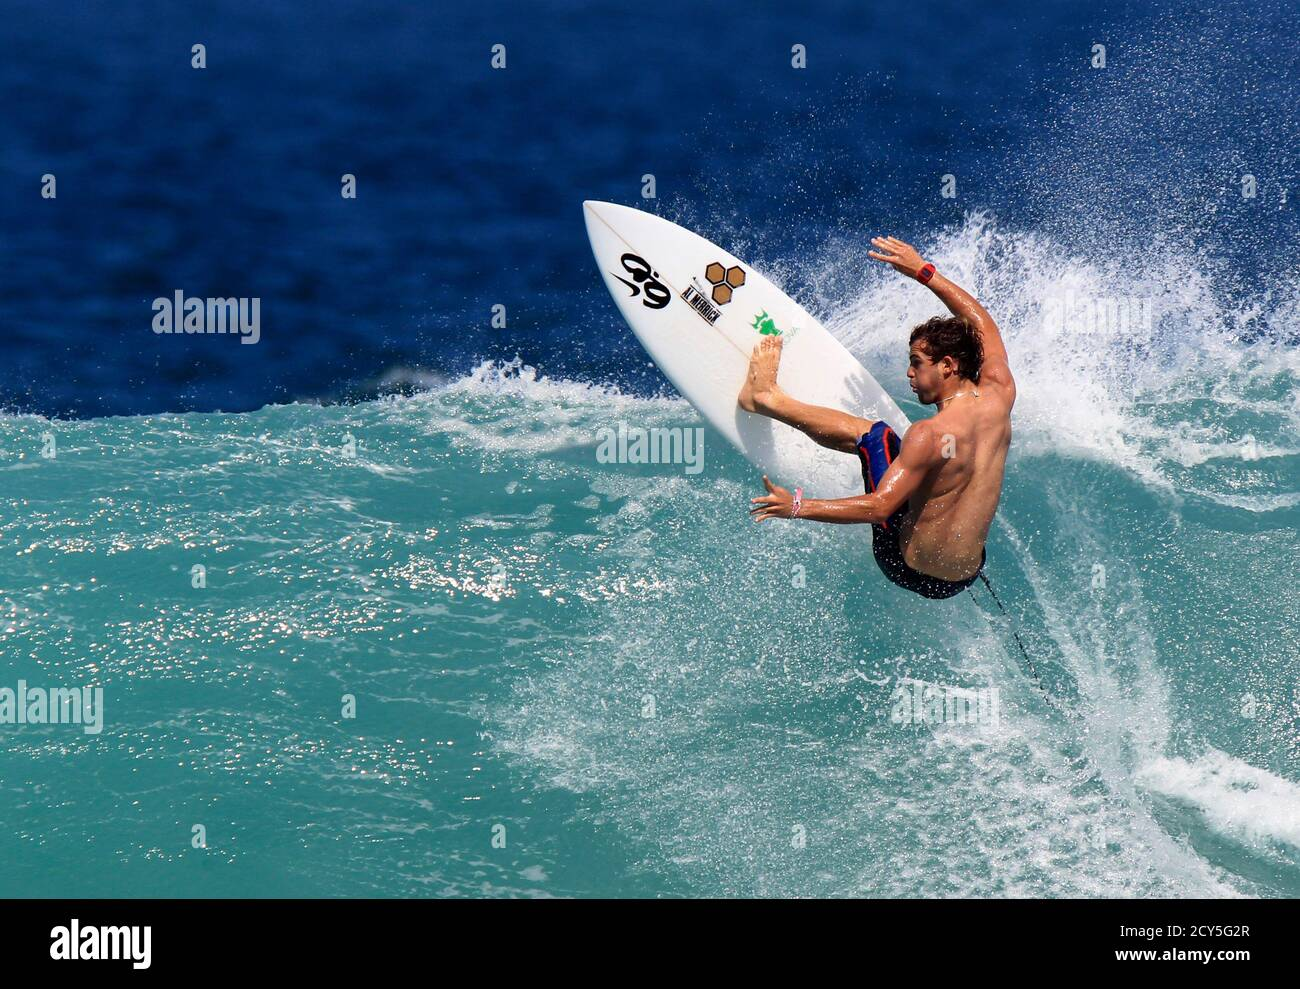 Alejo Muniz of Brazil surfs a wave during a training session for the men's Association of Surfing Professionals (ASP) Billabong Rio Pro championship at Barra da Tijuca beach in Rio de Janeiro May 11, 2011. After monitoring conditions throughout the morning, event organizers have called competition off for the competition on Wednesday due to six foot (2 meters) closeout waves at the main event site of Barra da Tijuca beach. Organizers will reconvene tomorrow morning at 7 am local time to assess conditions.  REUTERS/Sergio Moraes (BRAZIL - Tags: SPORT)  FOR BEST QUALITY IMAGE ALSO SEE: GM1E96R1T Stock Photo